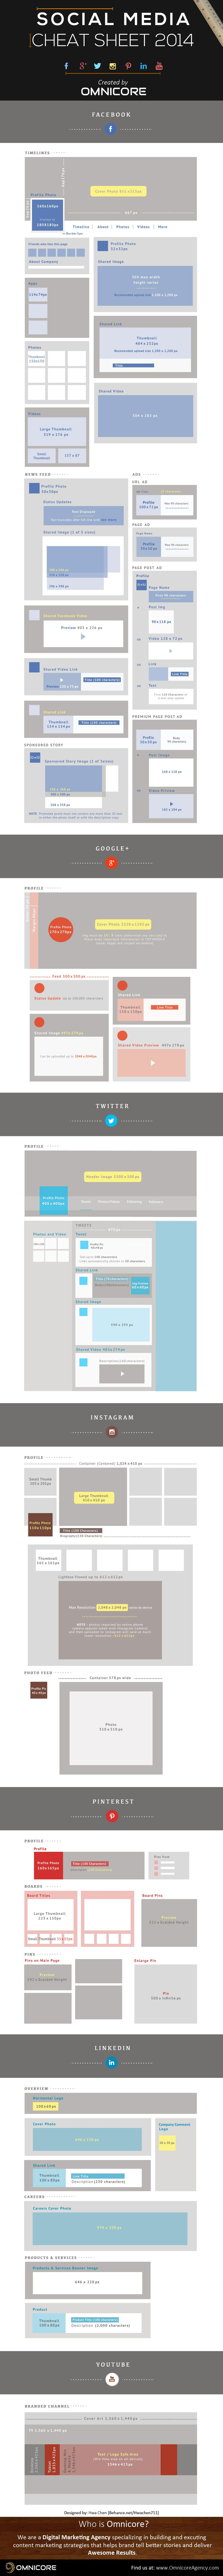 The Essential Social Media Design and Sizing Cheat Sheet